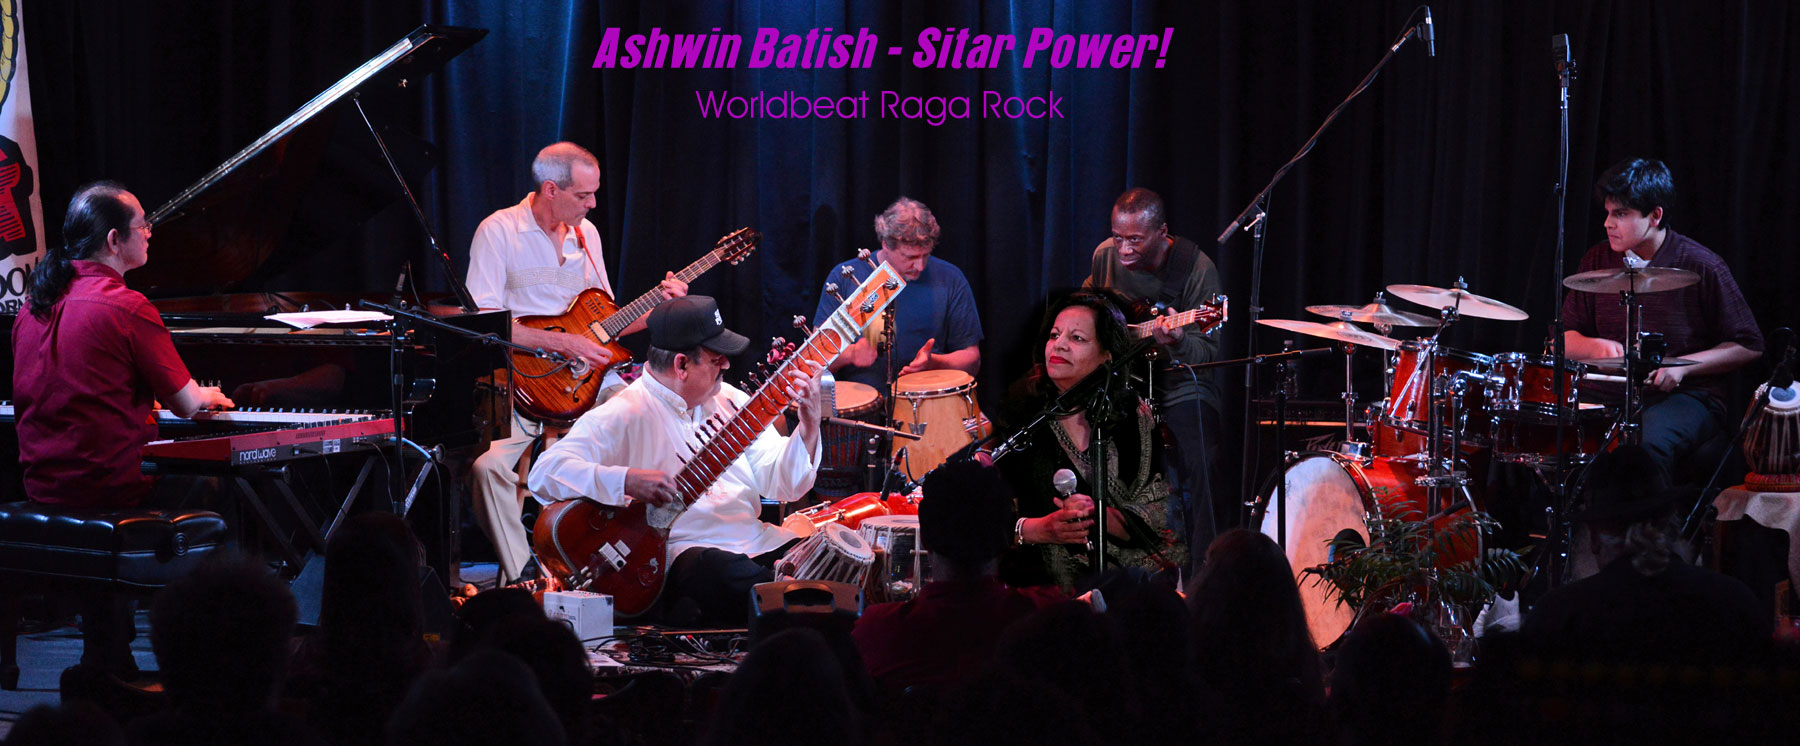 World Beat Raga Rock! Ashwin Batish with his Sitar Power group - live at the Kuumbwa Jazz Center, Santa Cruz. All rights reserved. �12 Ashwin Batish. Copyrighted image